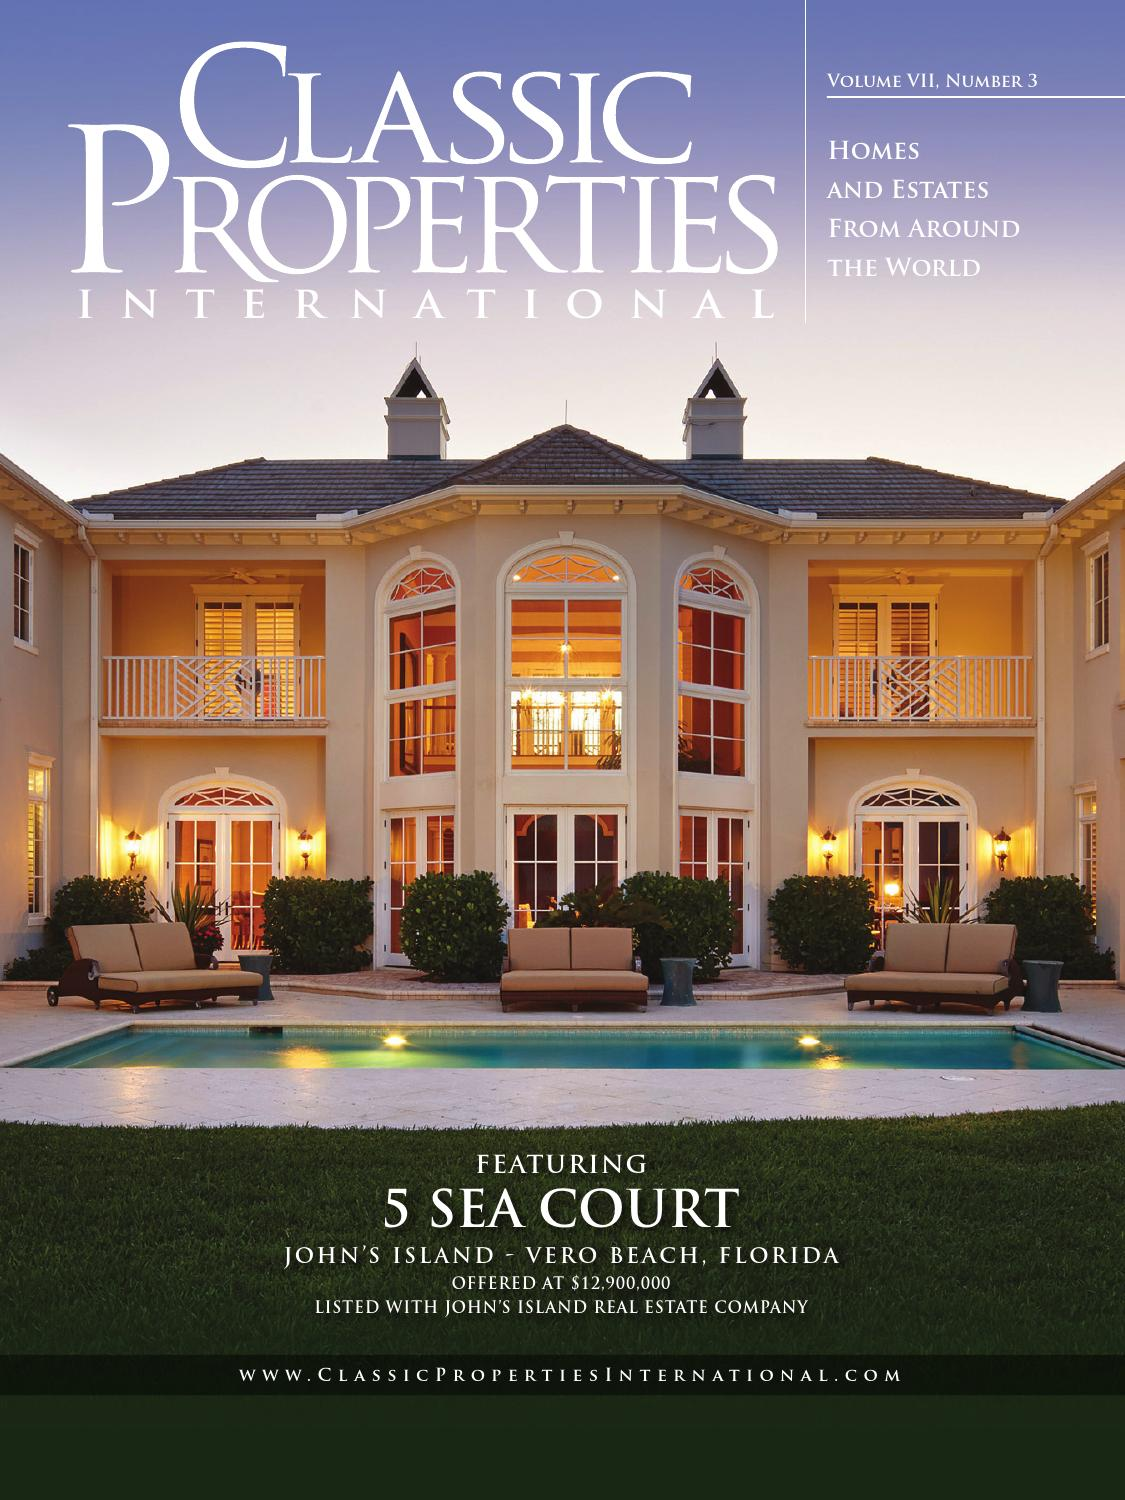 Classic properties international vol vii no 3 john 39 s for Classic homes real estate